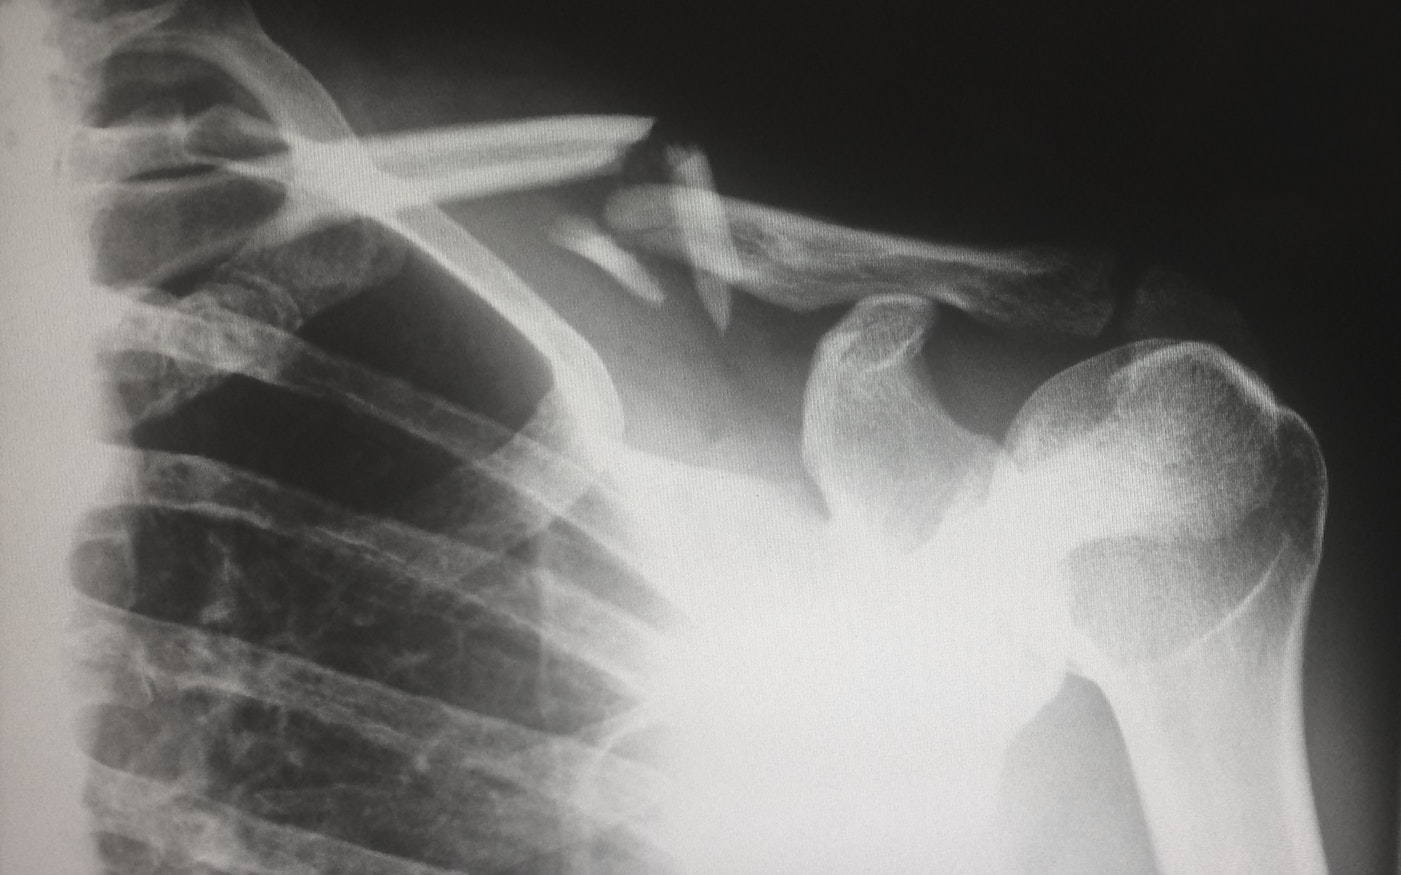 An x-ray. Osteoporosis is one of the 10 common senior health issues.